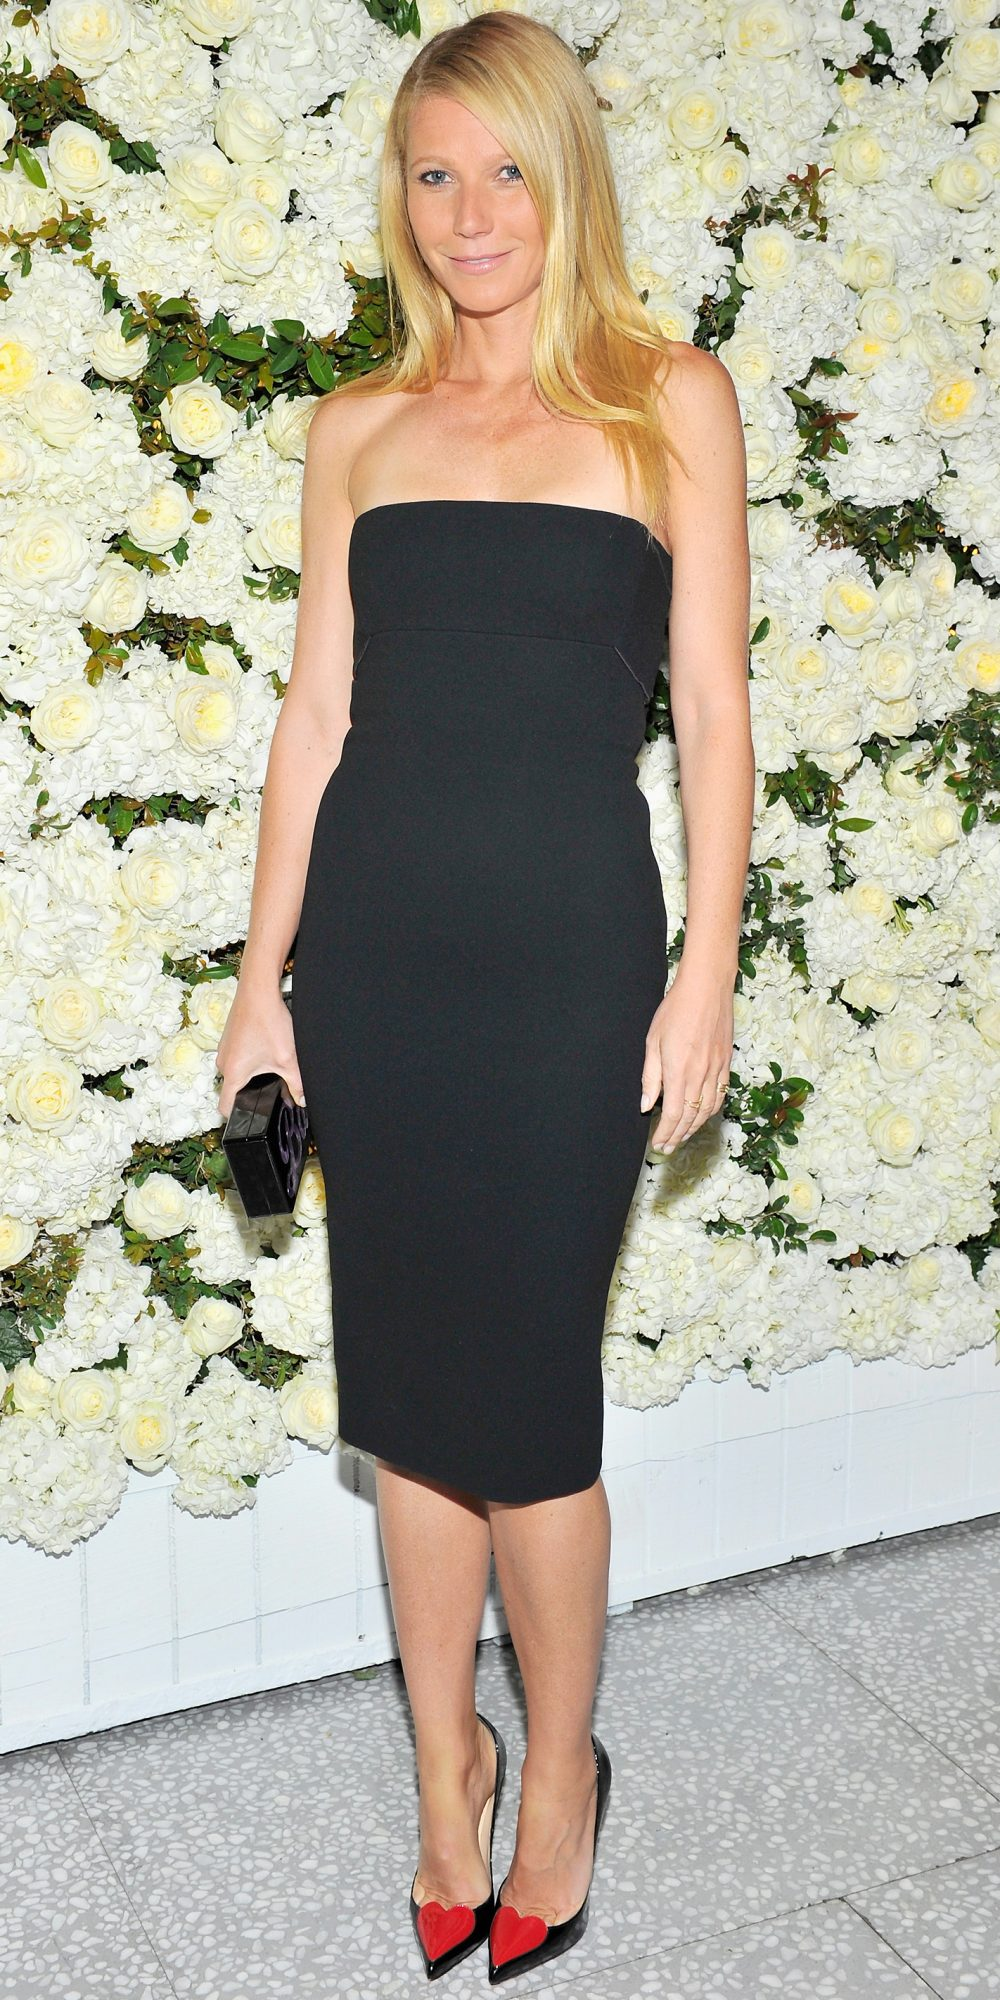 Gwyneth Paltrow in Victoria Beckham